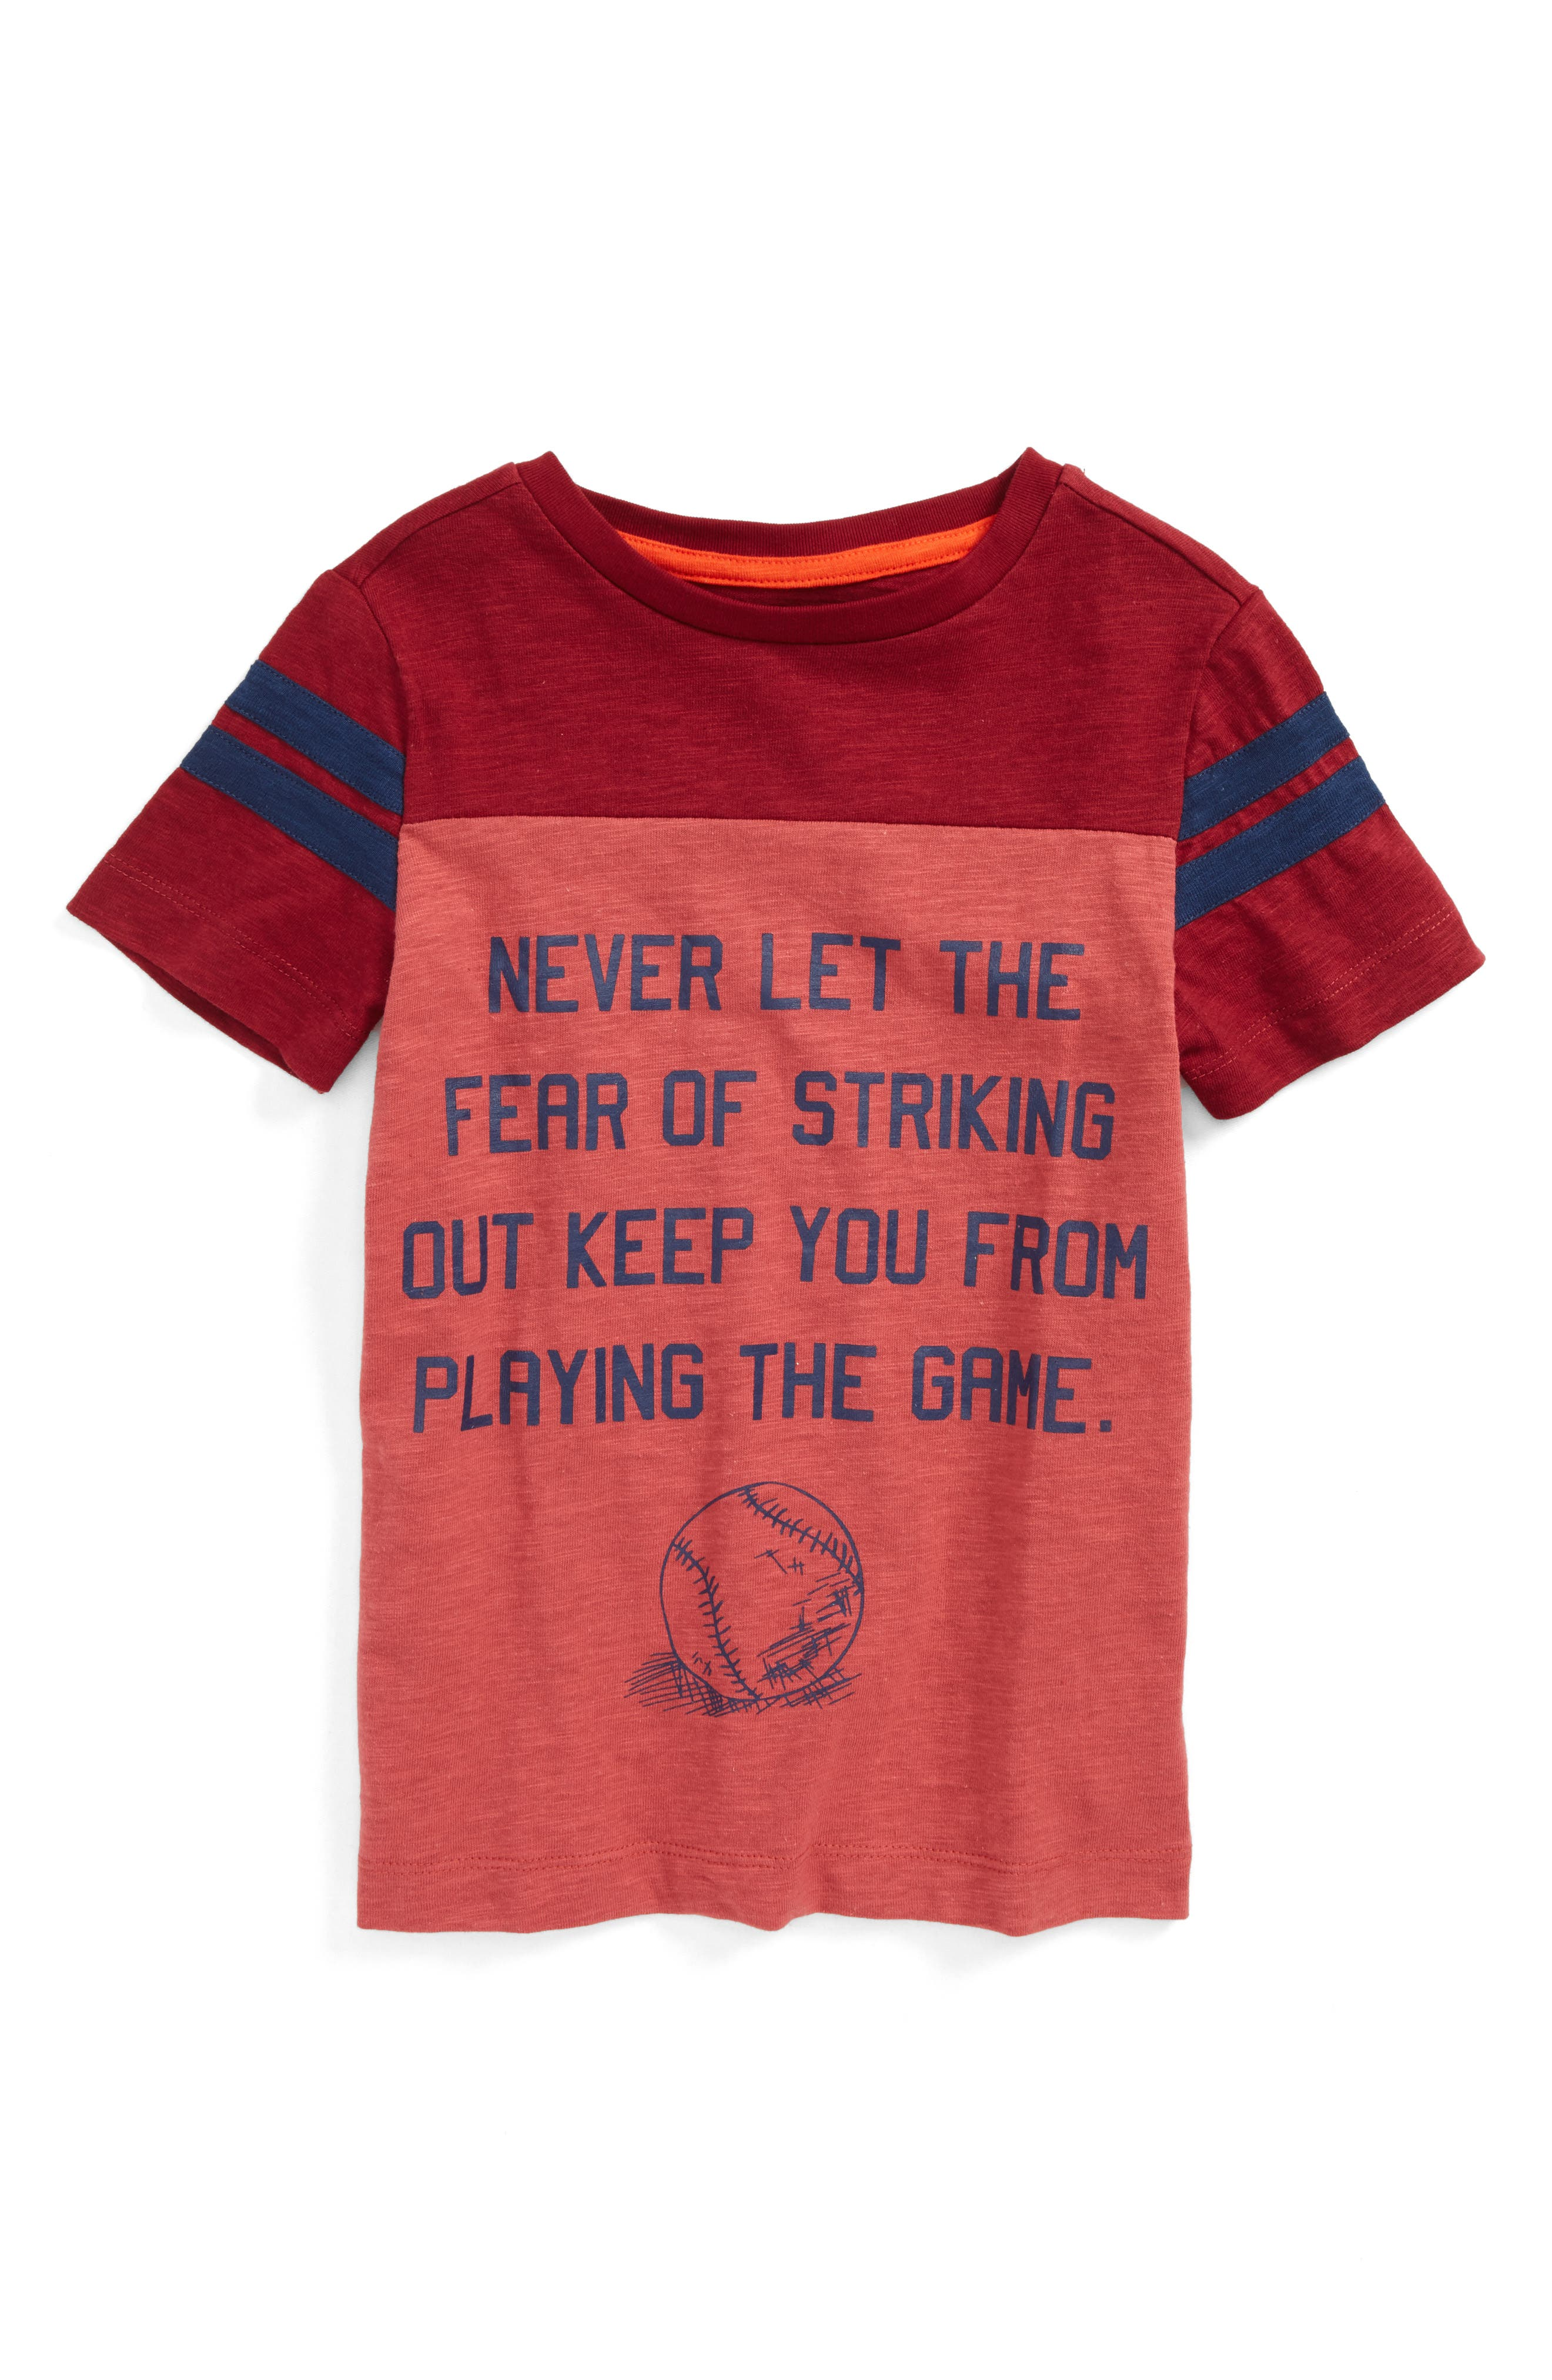 Striking Out T-Shirt,                         Main,                         color, 930